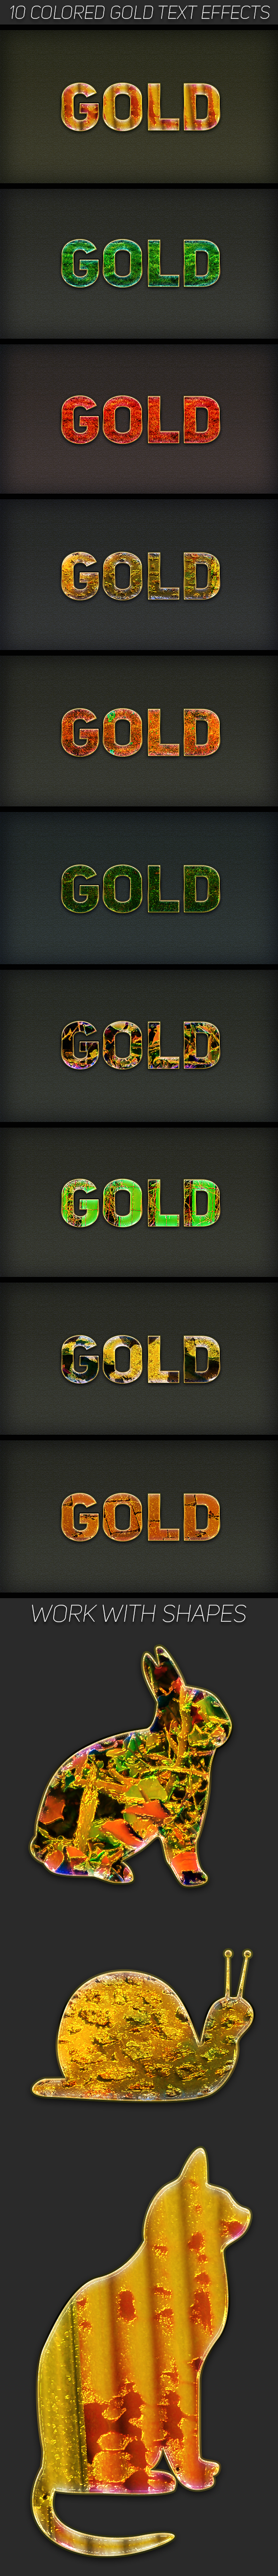 Colored Gold Text Effects - Text Effects Styles